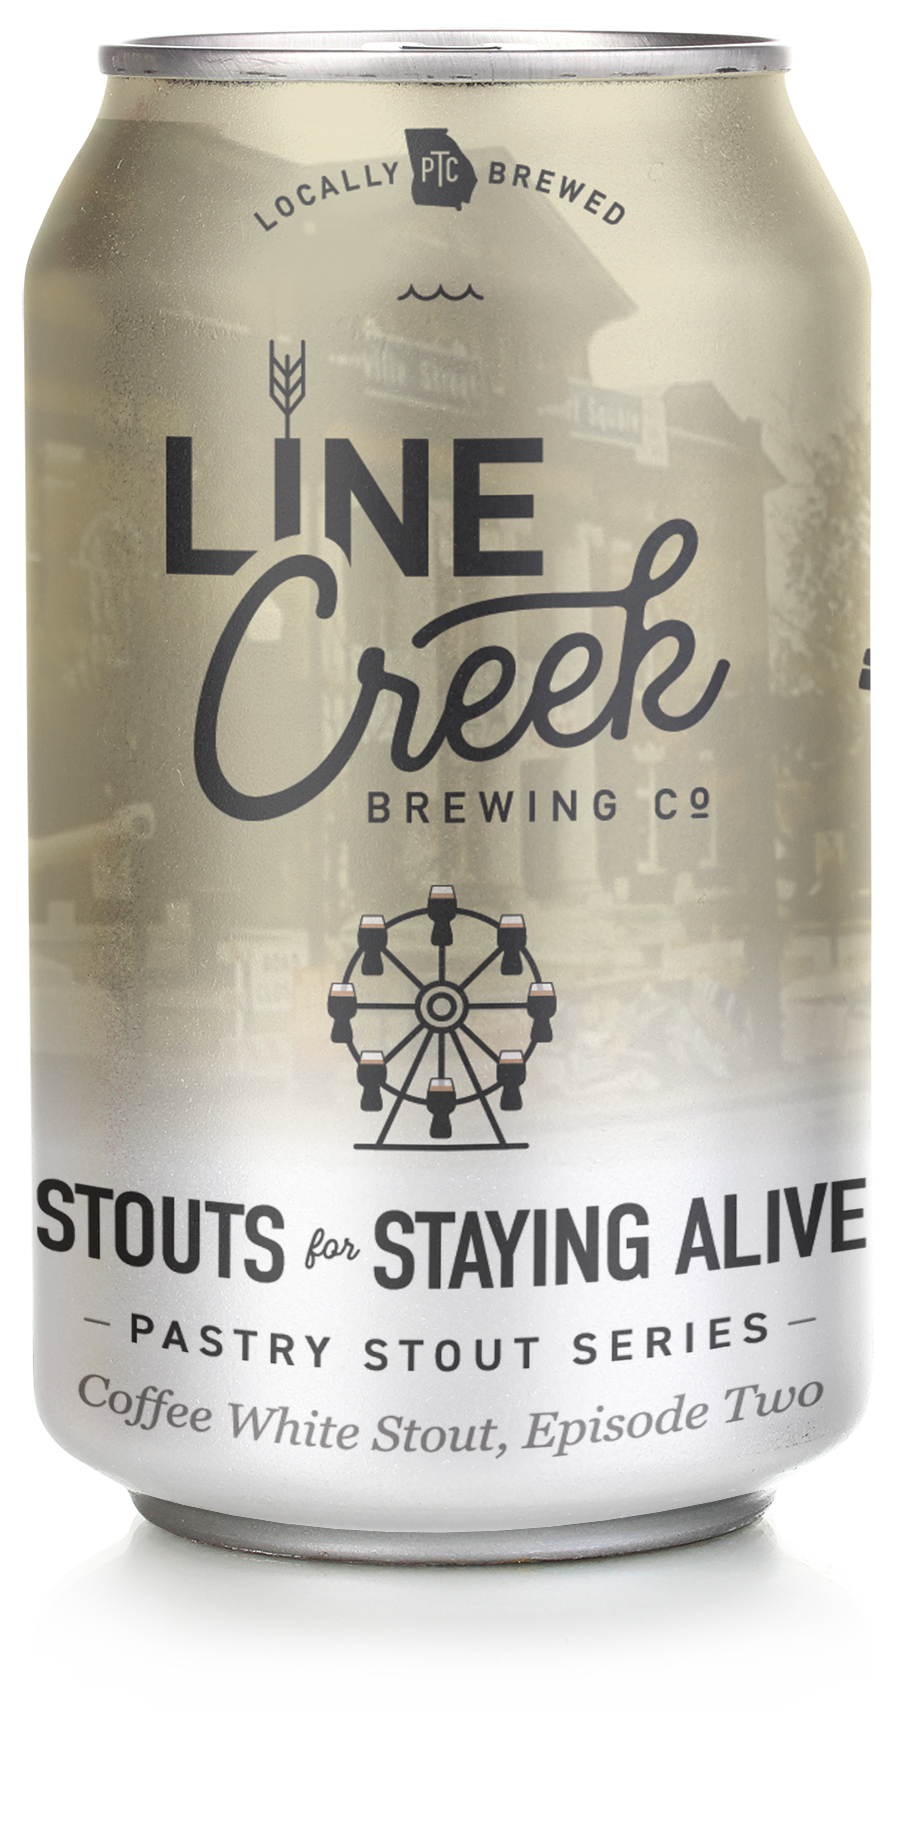 https://linecreekbrewing.com/wp-content/uploads/2019/03/stouts-staying-alive-cookies.png